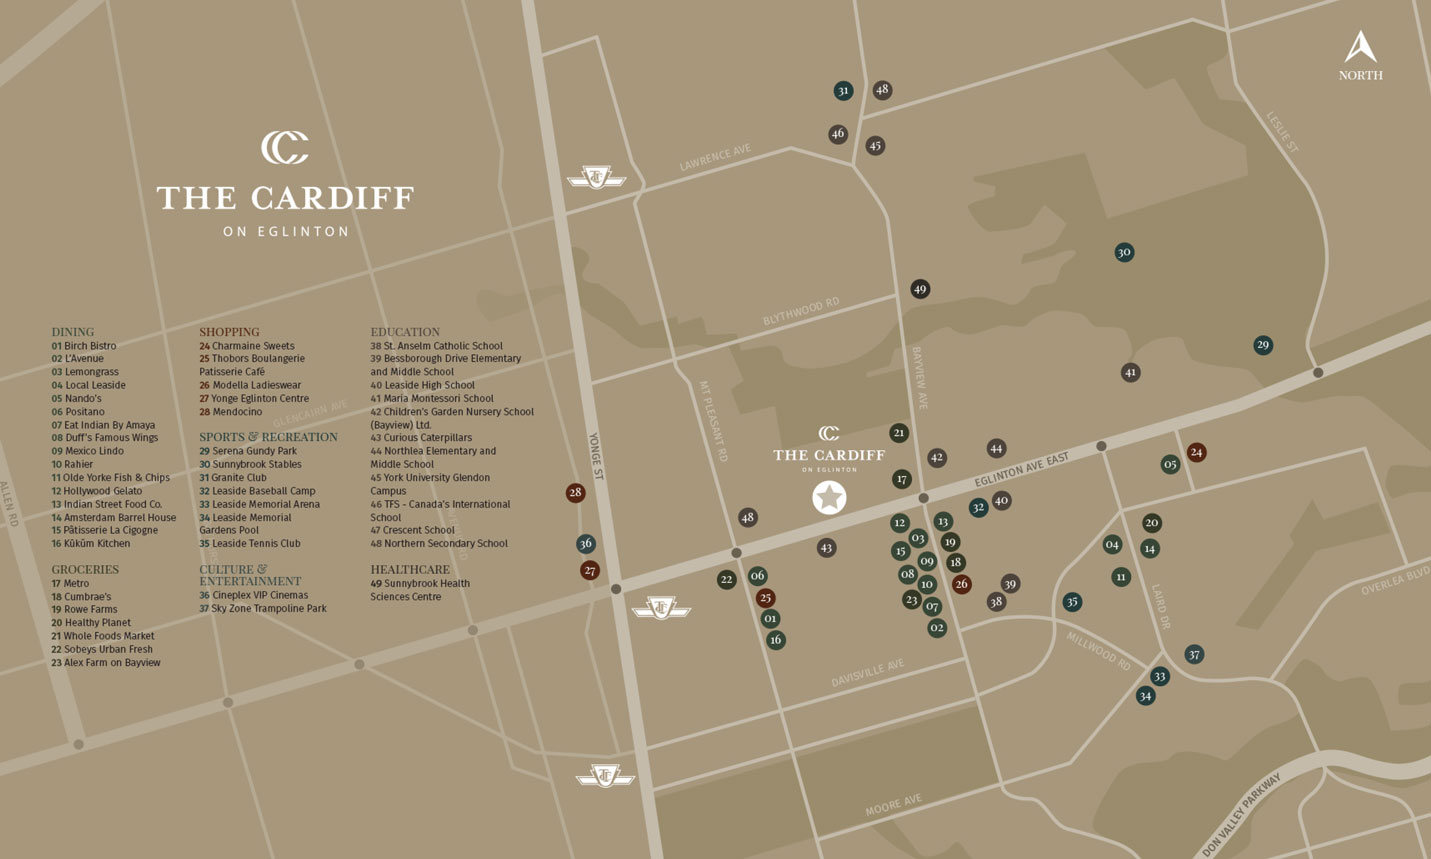 The Cardiff on Eglinton location map